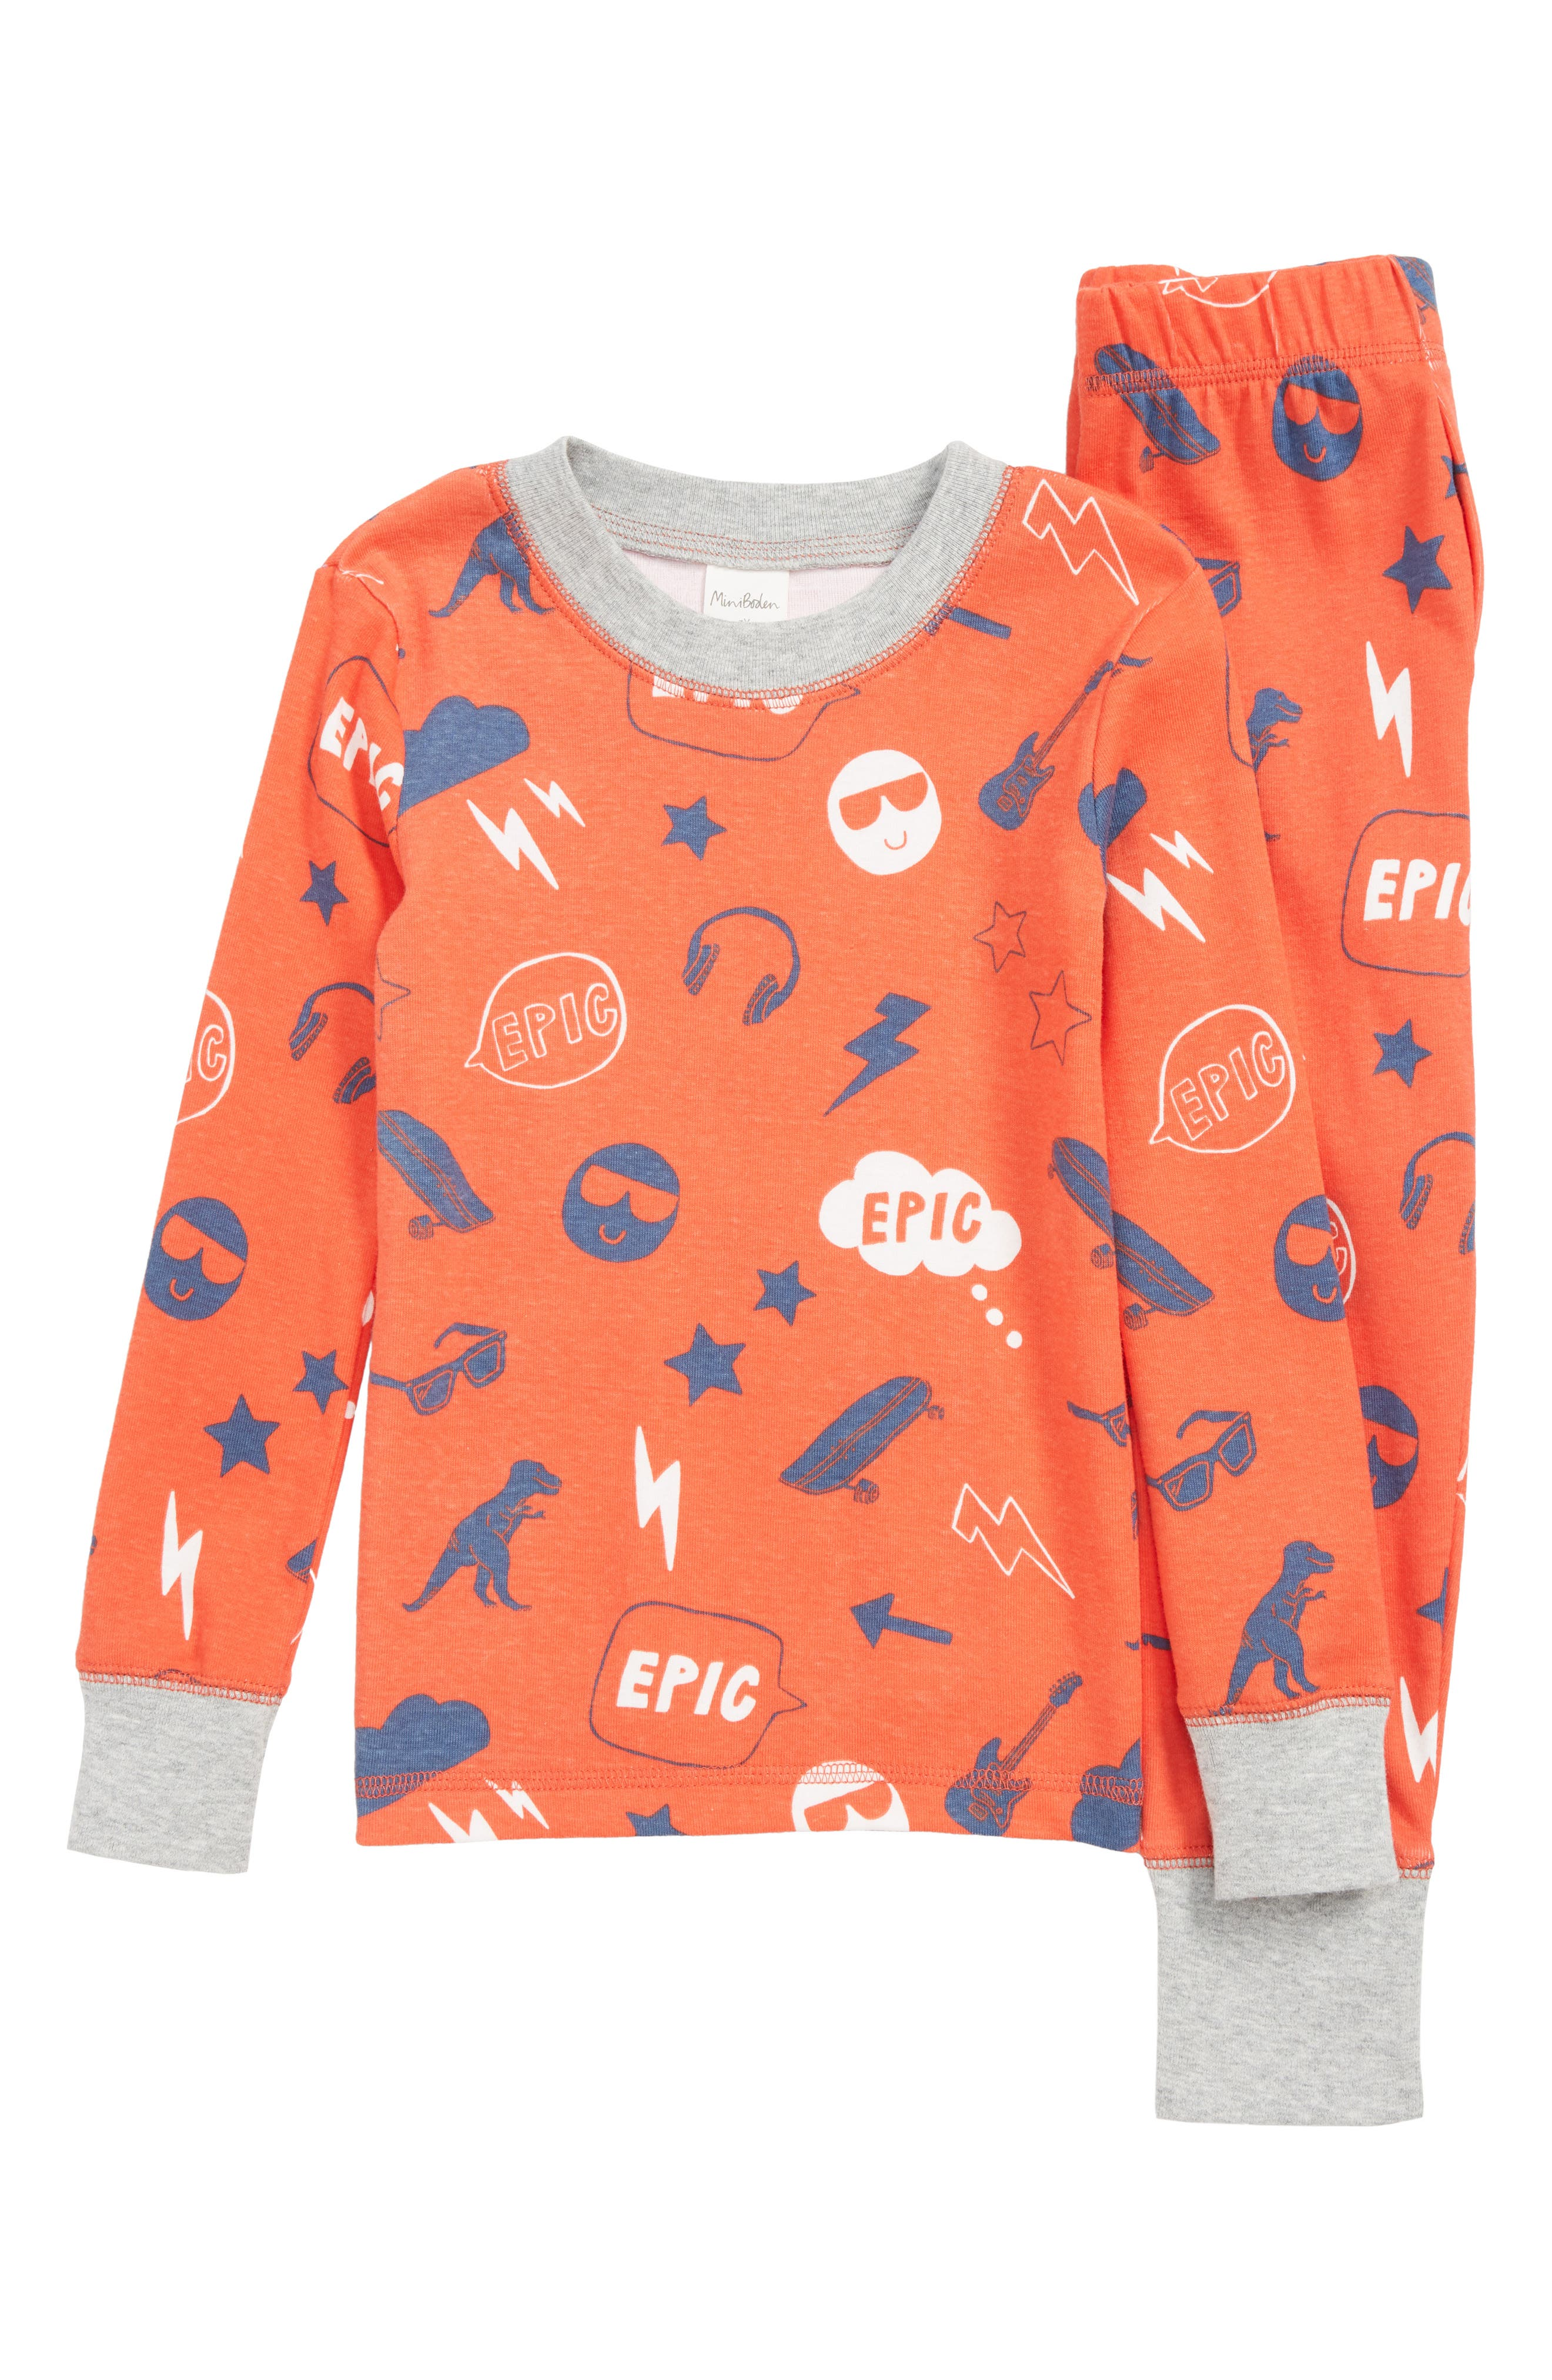 BODEN Mini Boden Glow in the Dark Fitted Two-Piece Pajamas, Main, color, RED BEAM RED EMOJI